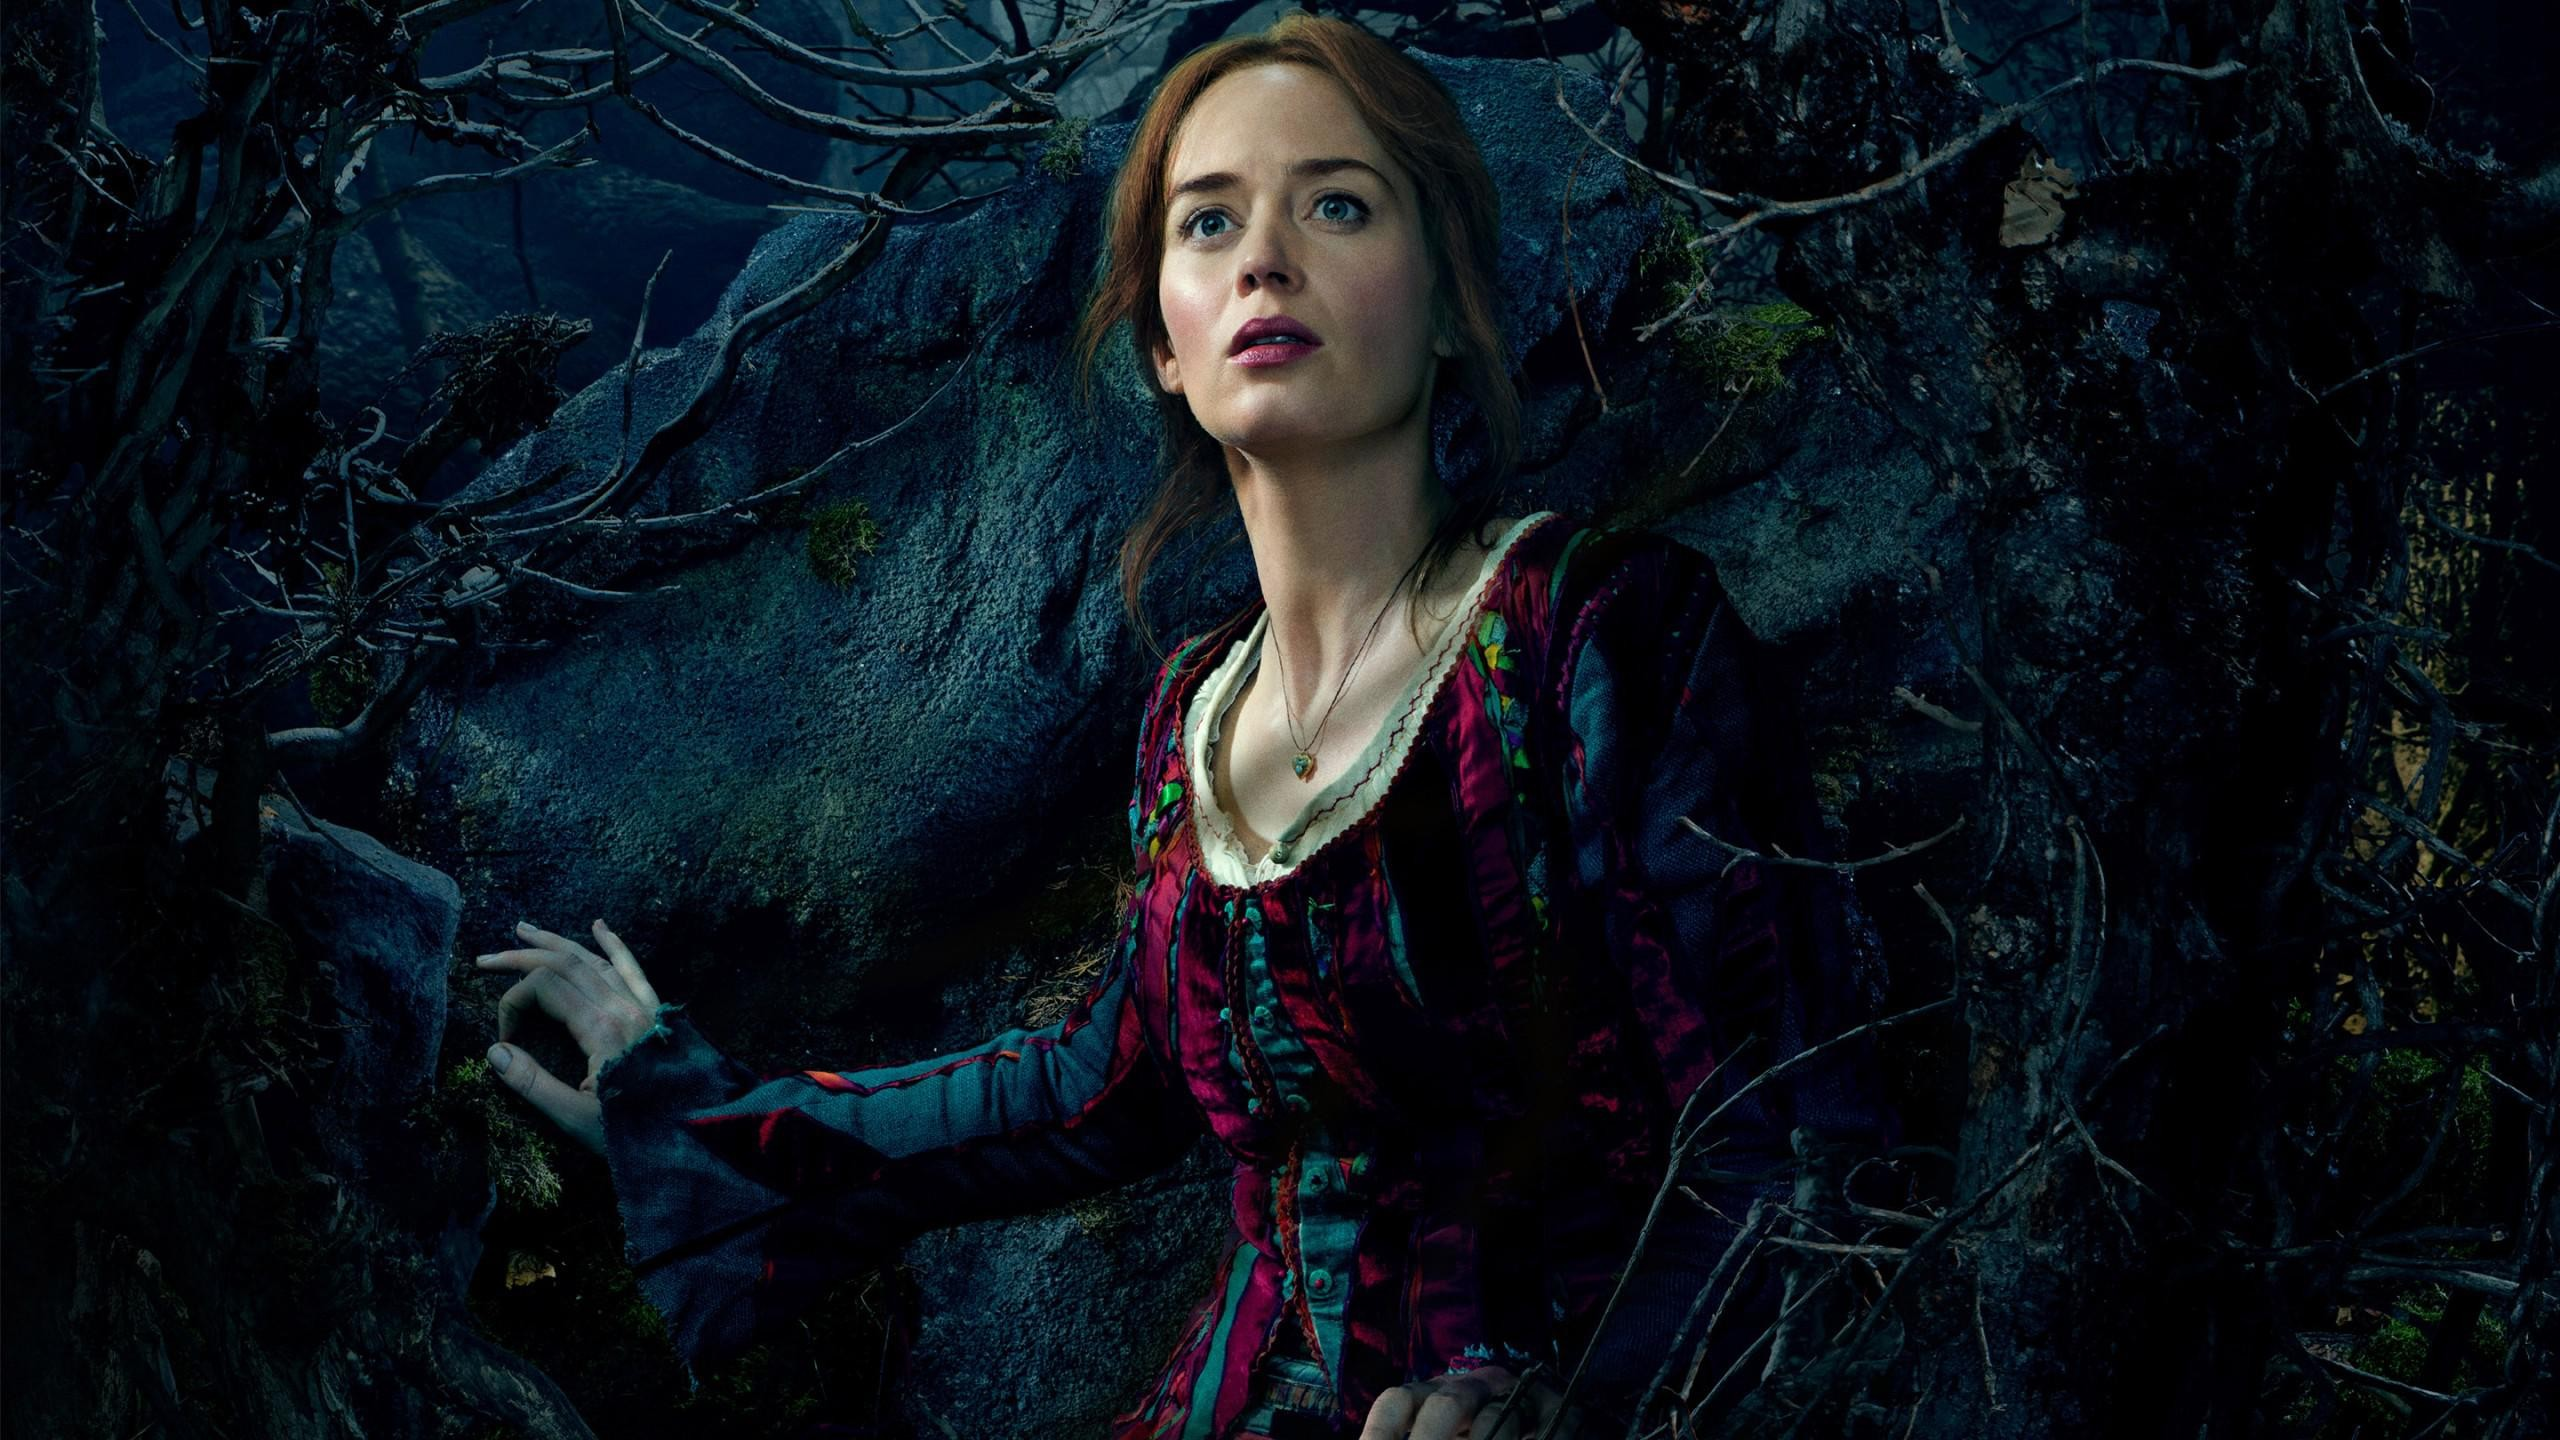 emily_blunt_in_into_the_woods_2014